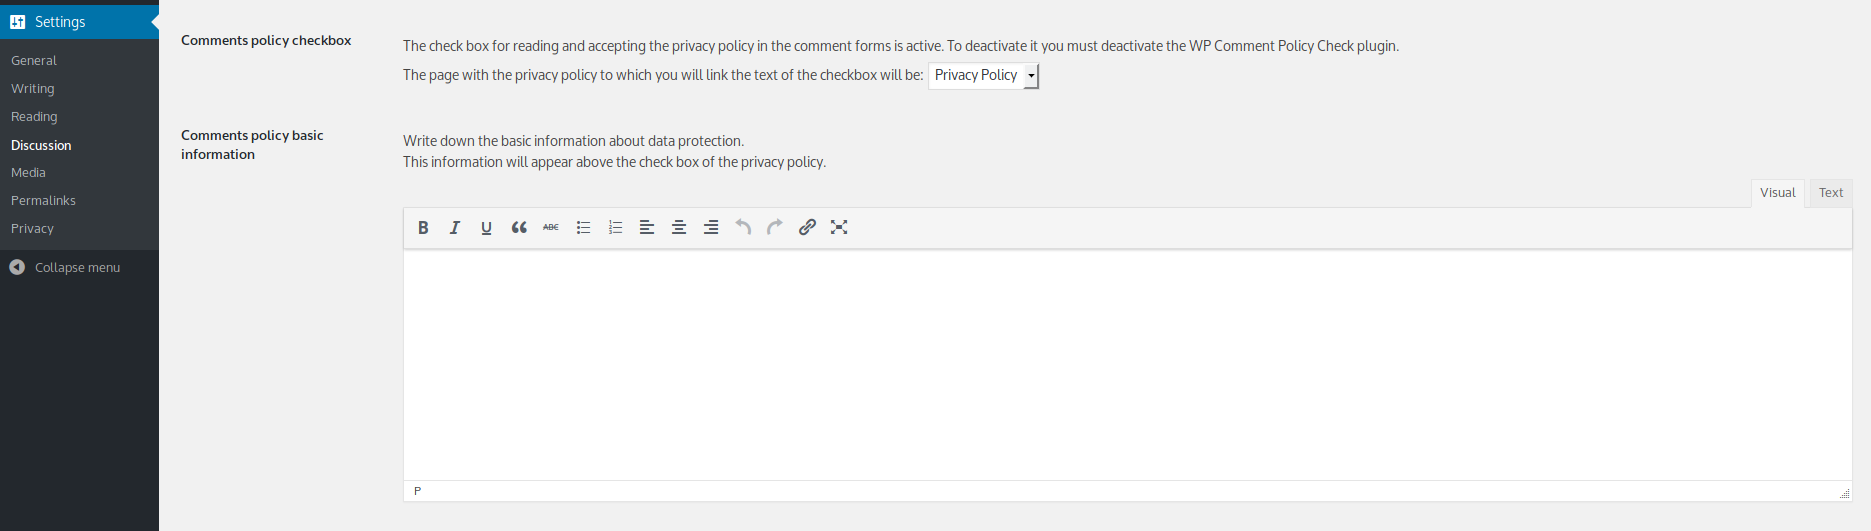 Setting fields on comments setting page.